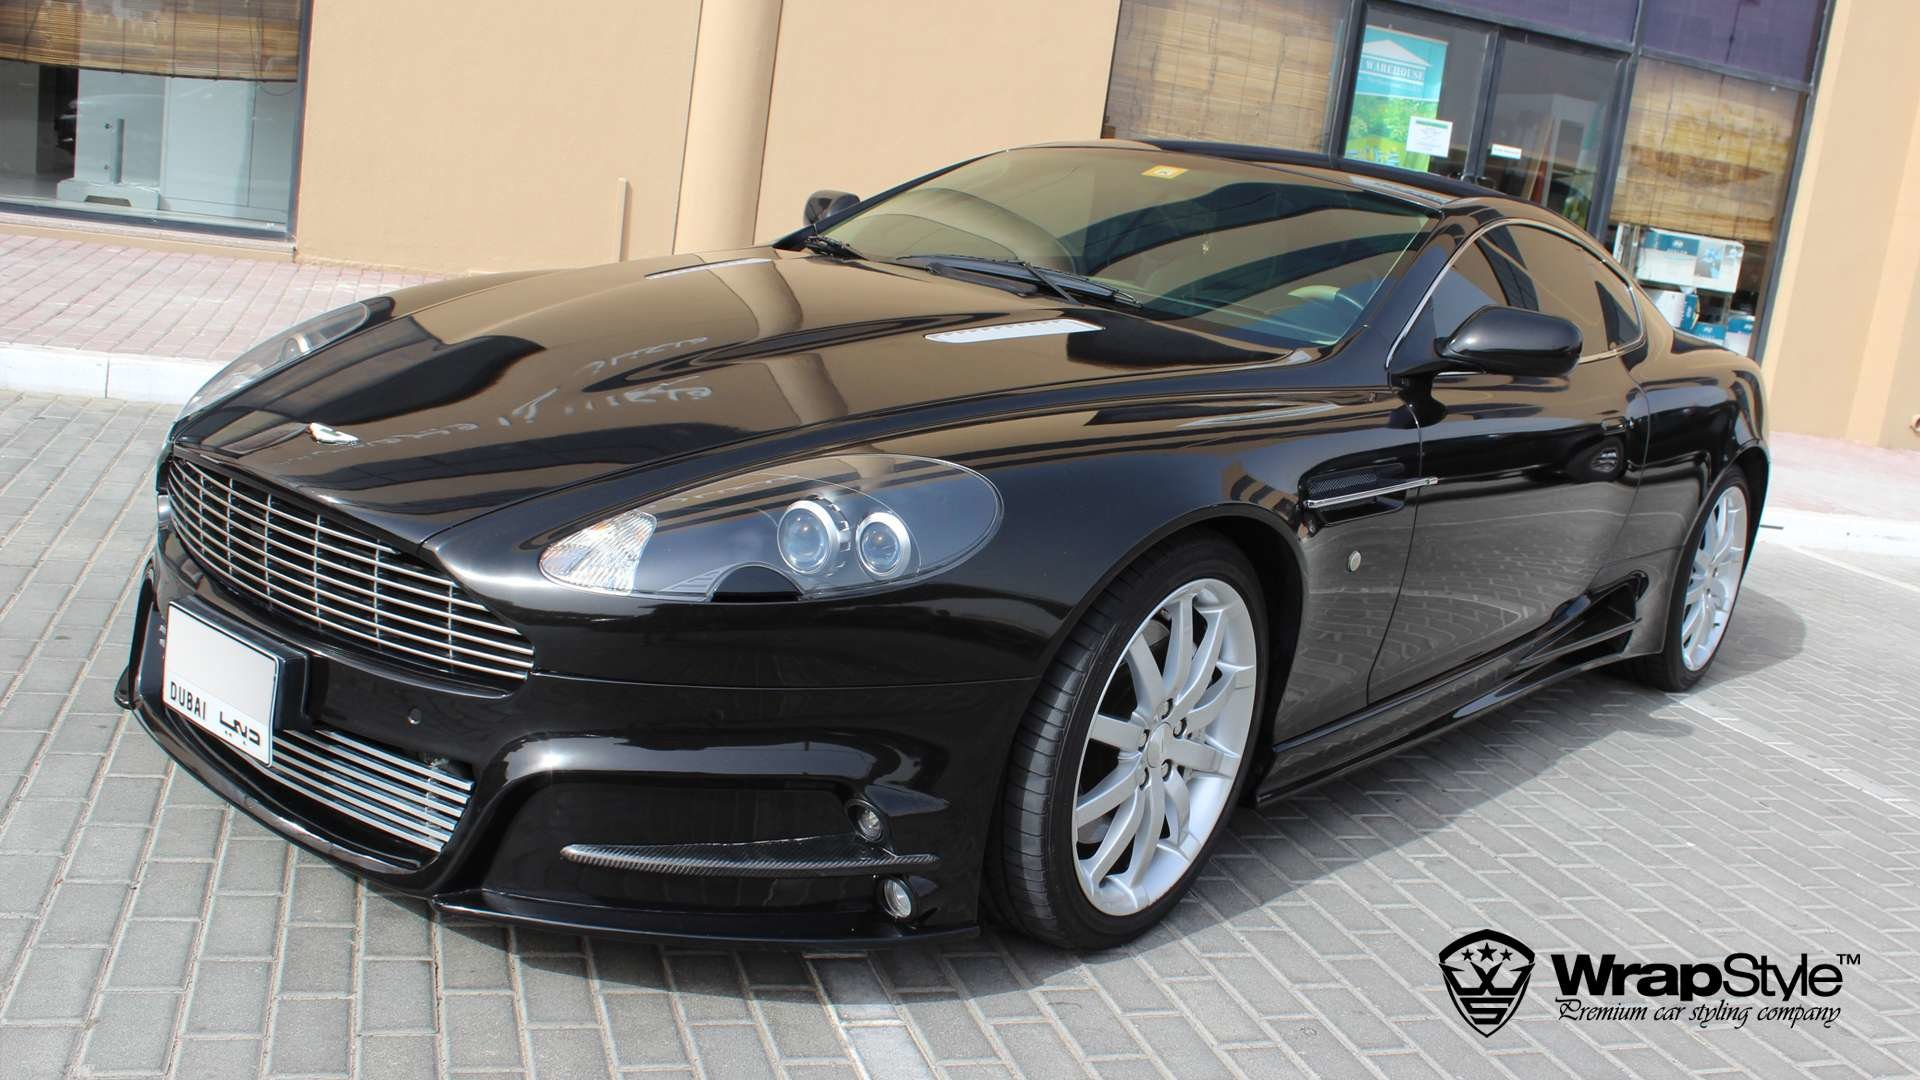 Aston Martin Dbs Black Metallic Wrap Wrapstyle